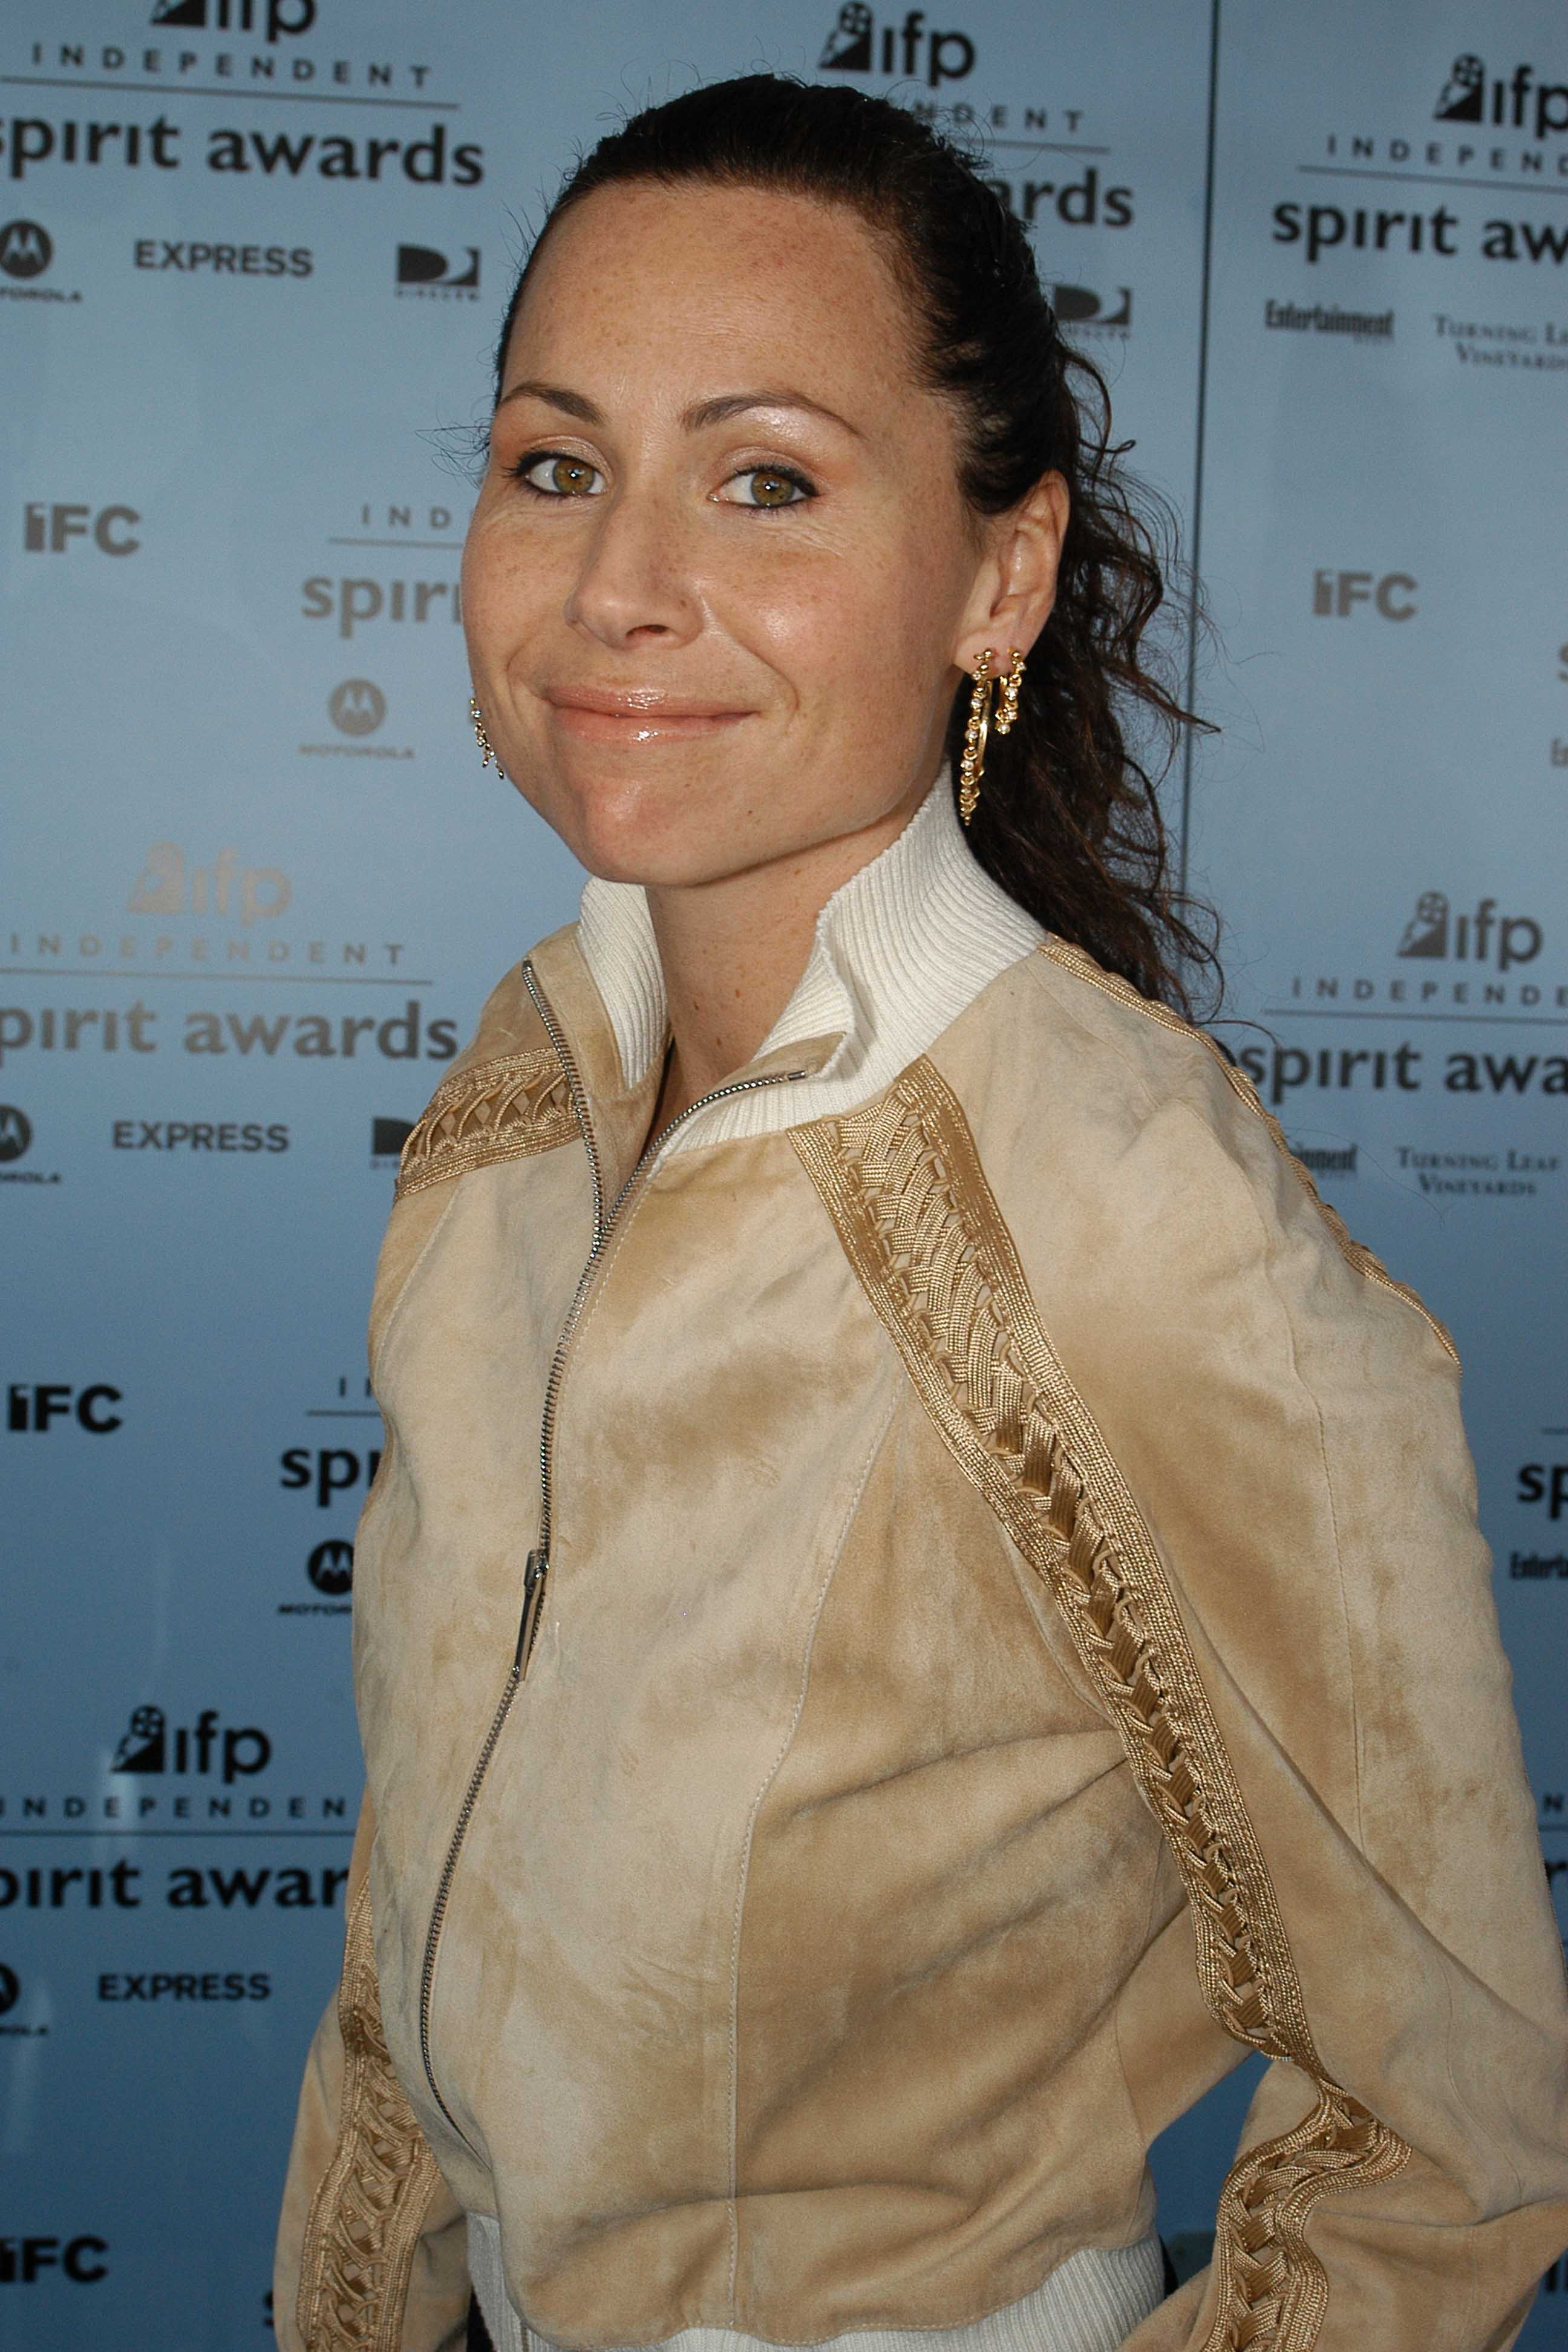 93171_Minnie_Driver_2003_IFC_Spirit_Award_03_123_409lo.JPG